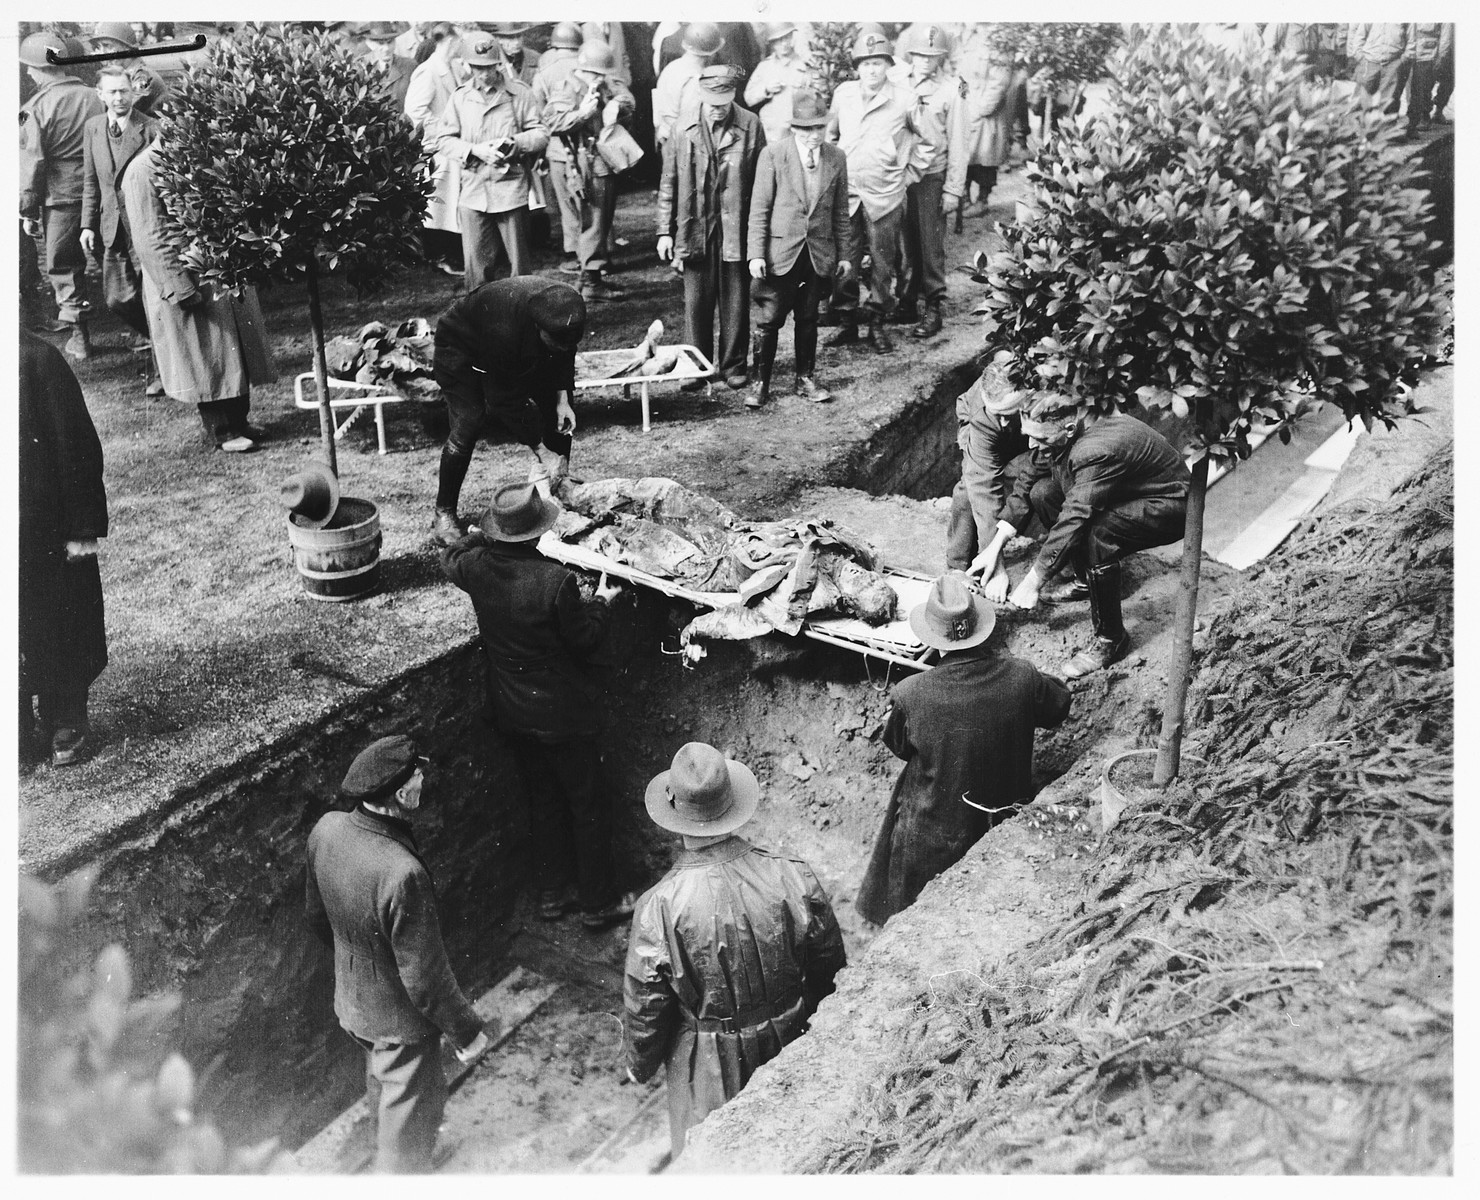 Under the direction of American soldiers, German civilians rebury the bodies of 71 political prisoners, exhumed from a mass grave near Solingen-Ohligs, in front of the city hall.    The victims, most of whom were taken from Luettringhausen prison, were shot and buried by the Gestapo following orders to eliminate all Reich enemies just before the end of the war.